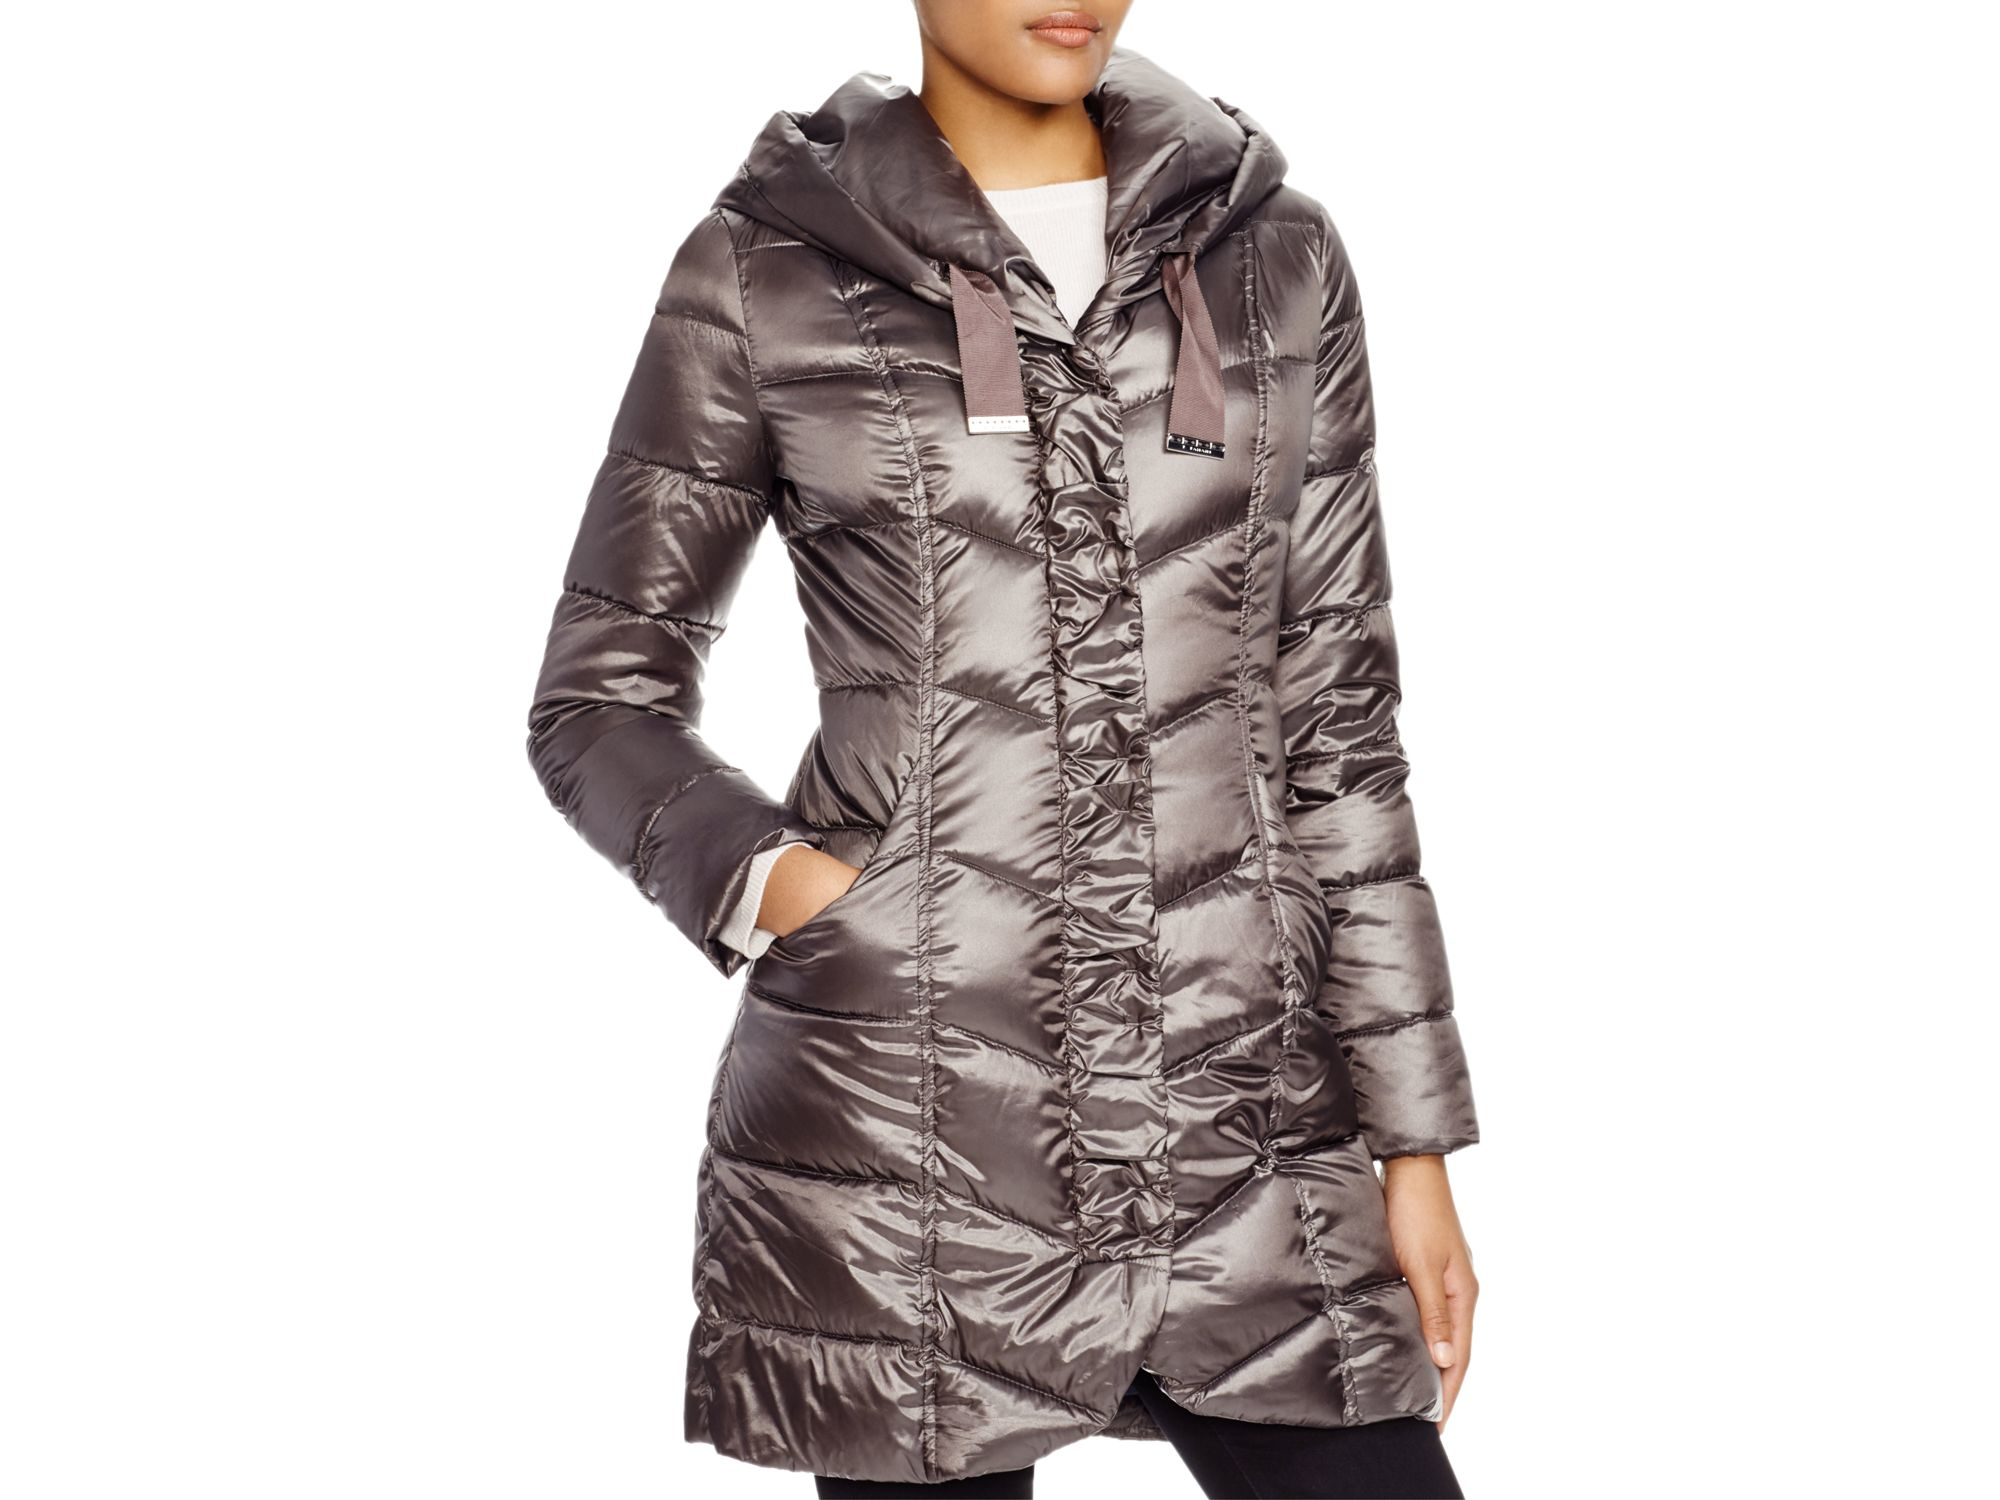 Lyst - T tahari Giselle Quilted Down Coat in Purple : down quilted coats - Adamdwight.com